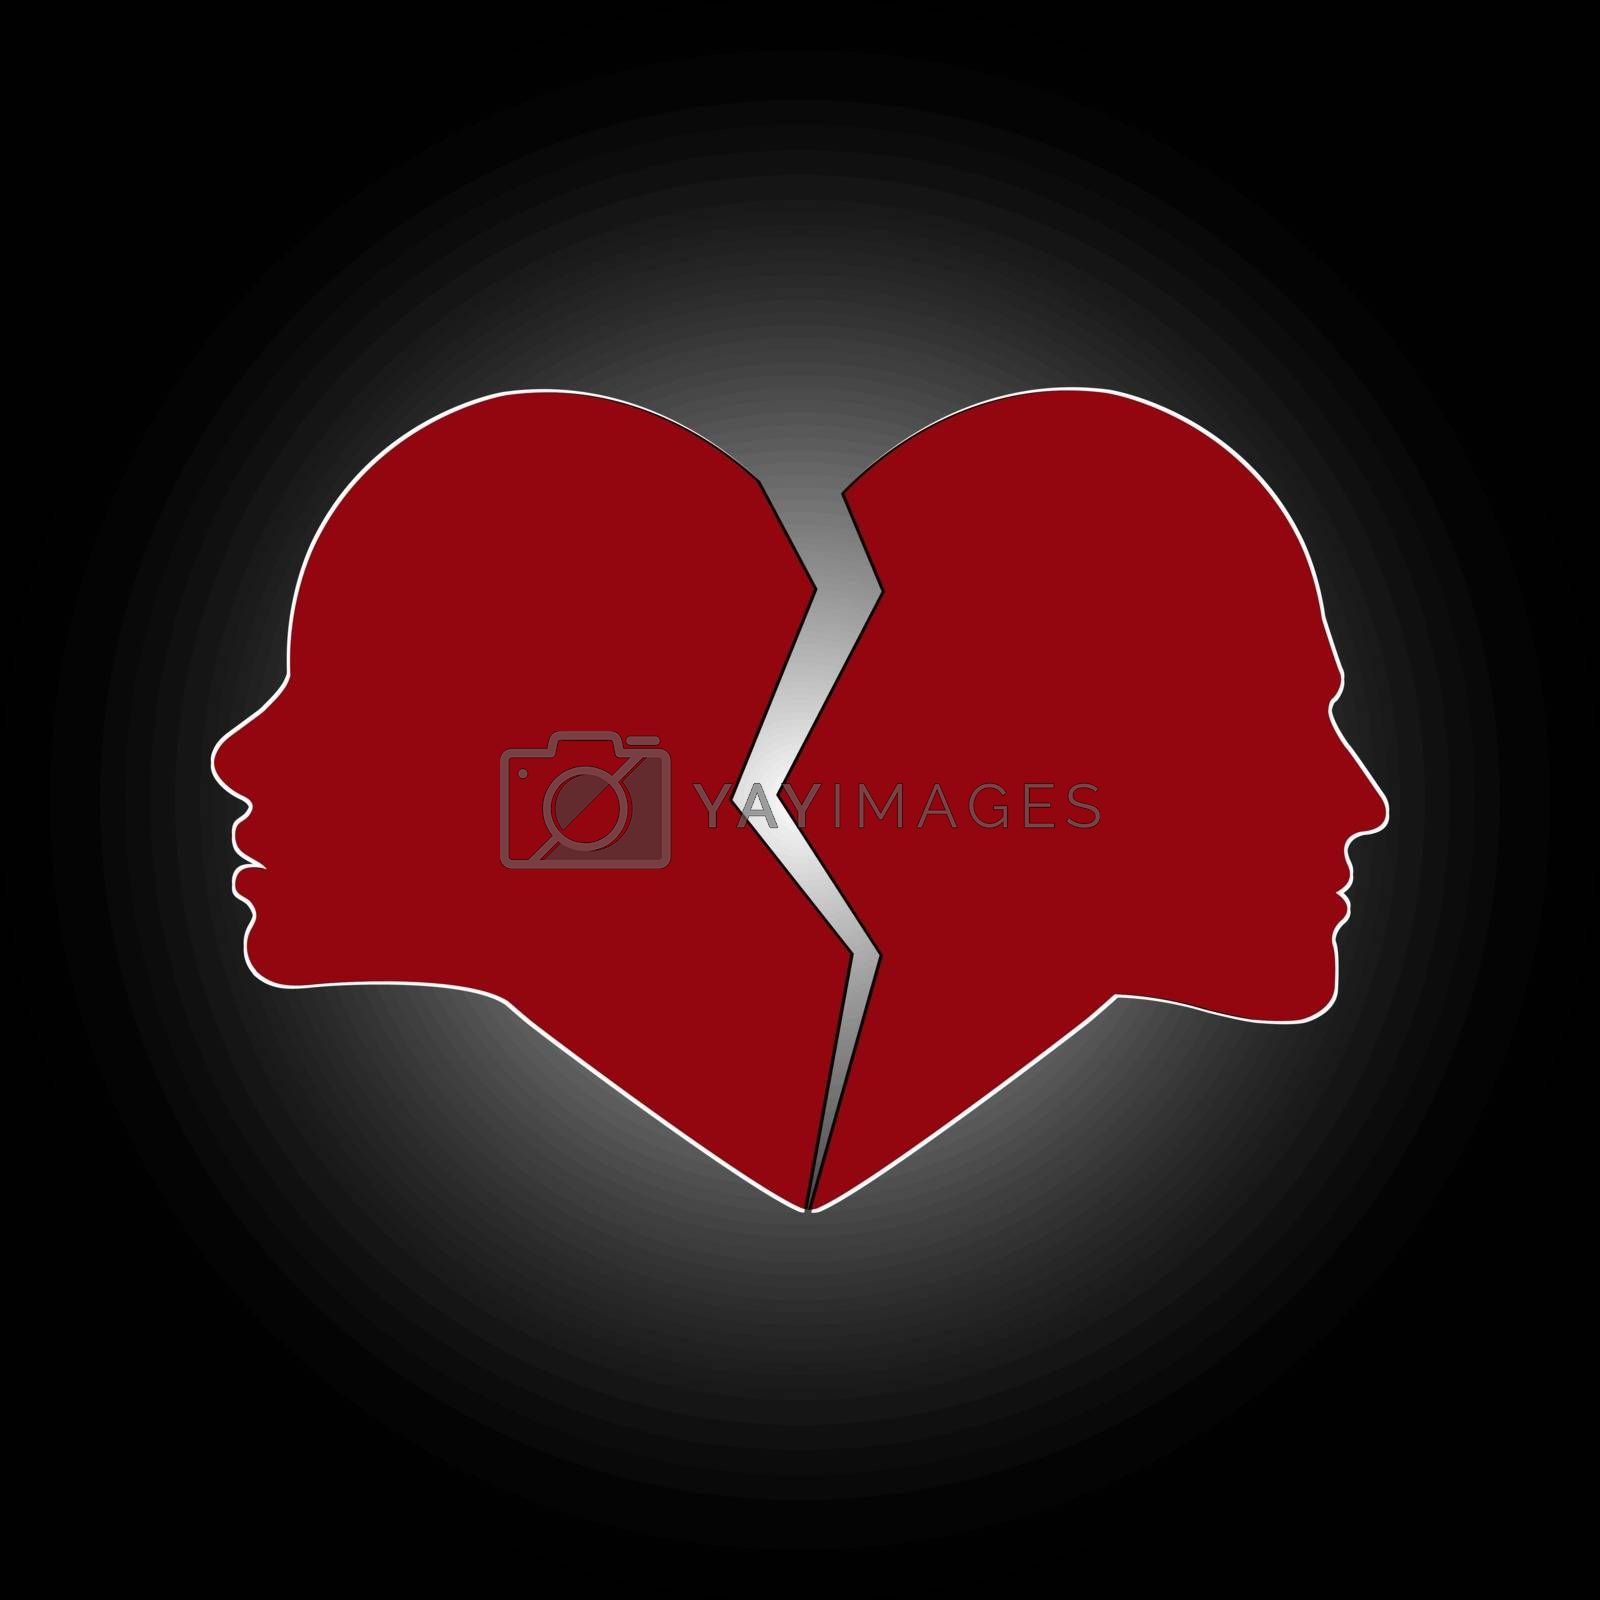 Broken heart with a profile of a female and male face